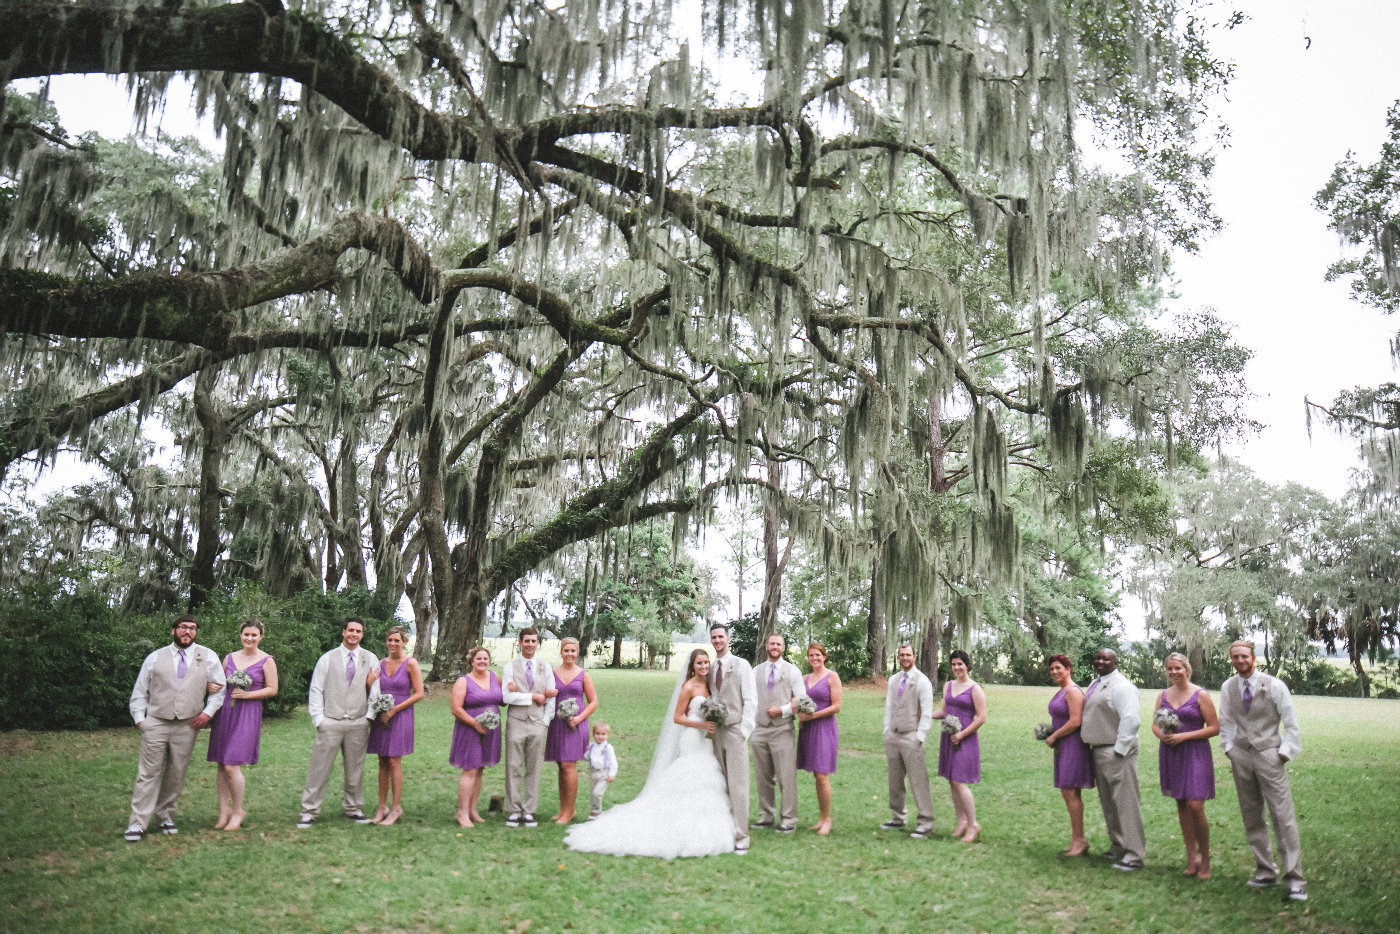 savannah_georgia_wedding_photography___dunham_farms___corbin___kailee__diblasio_photo_308